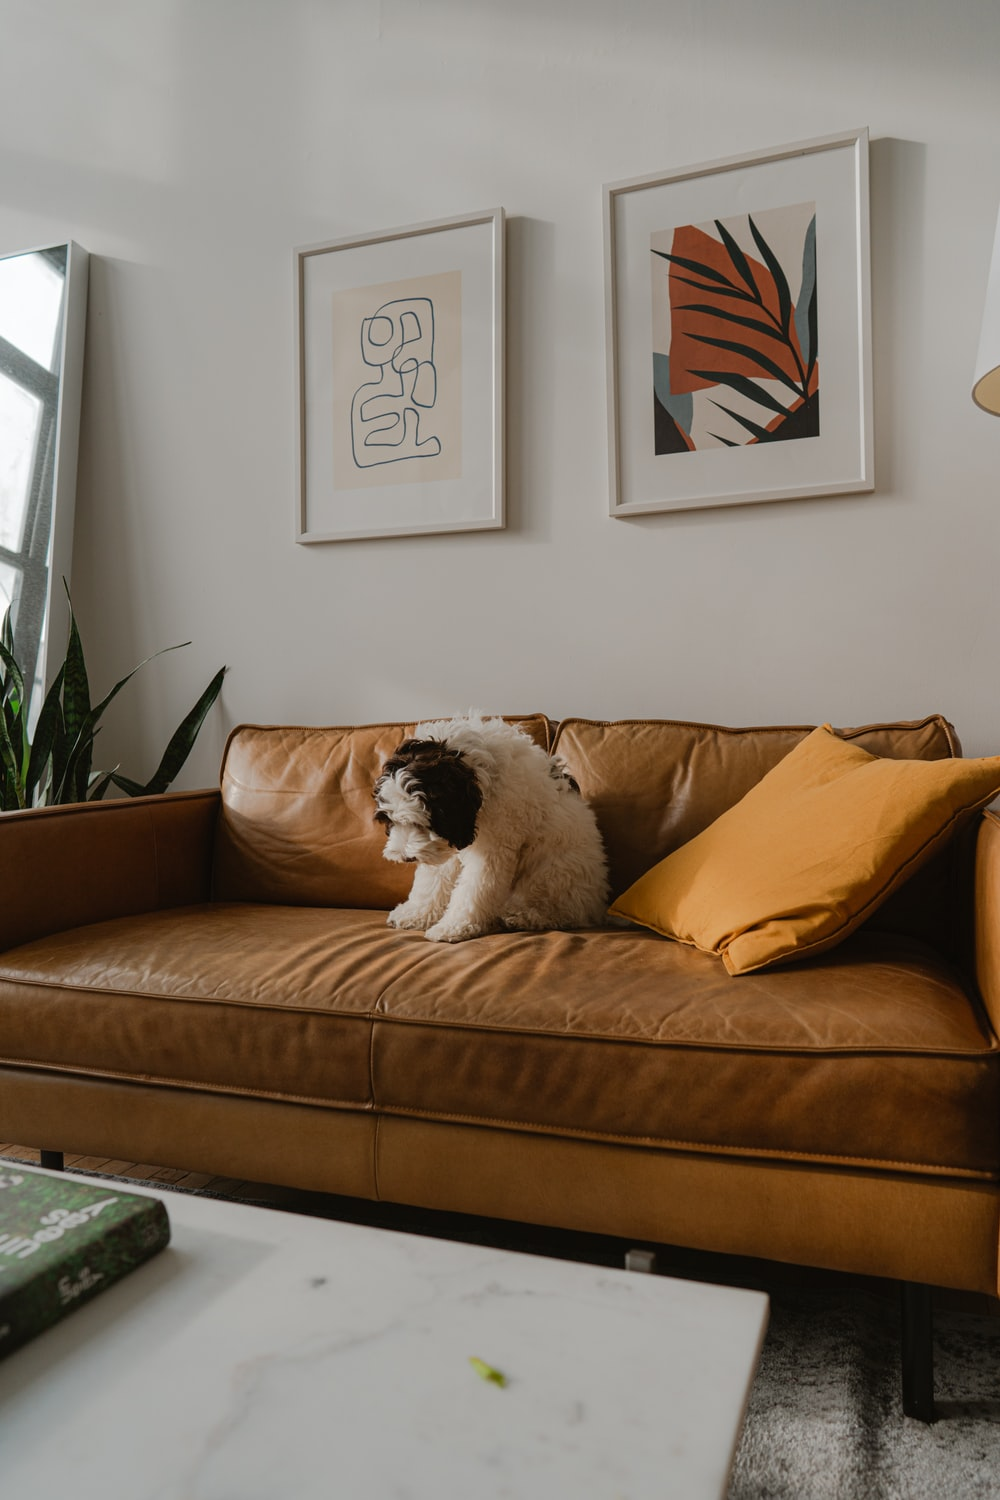 white and black short coated dog on brown couch